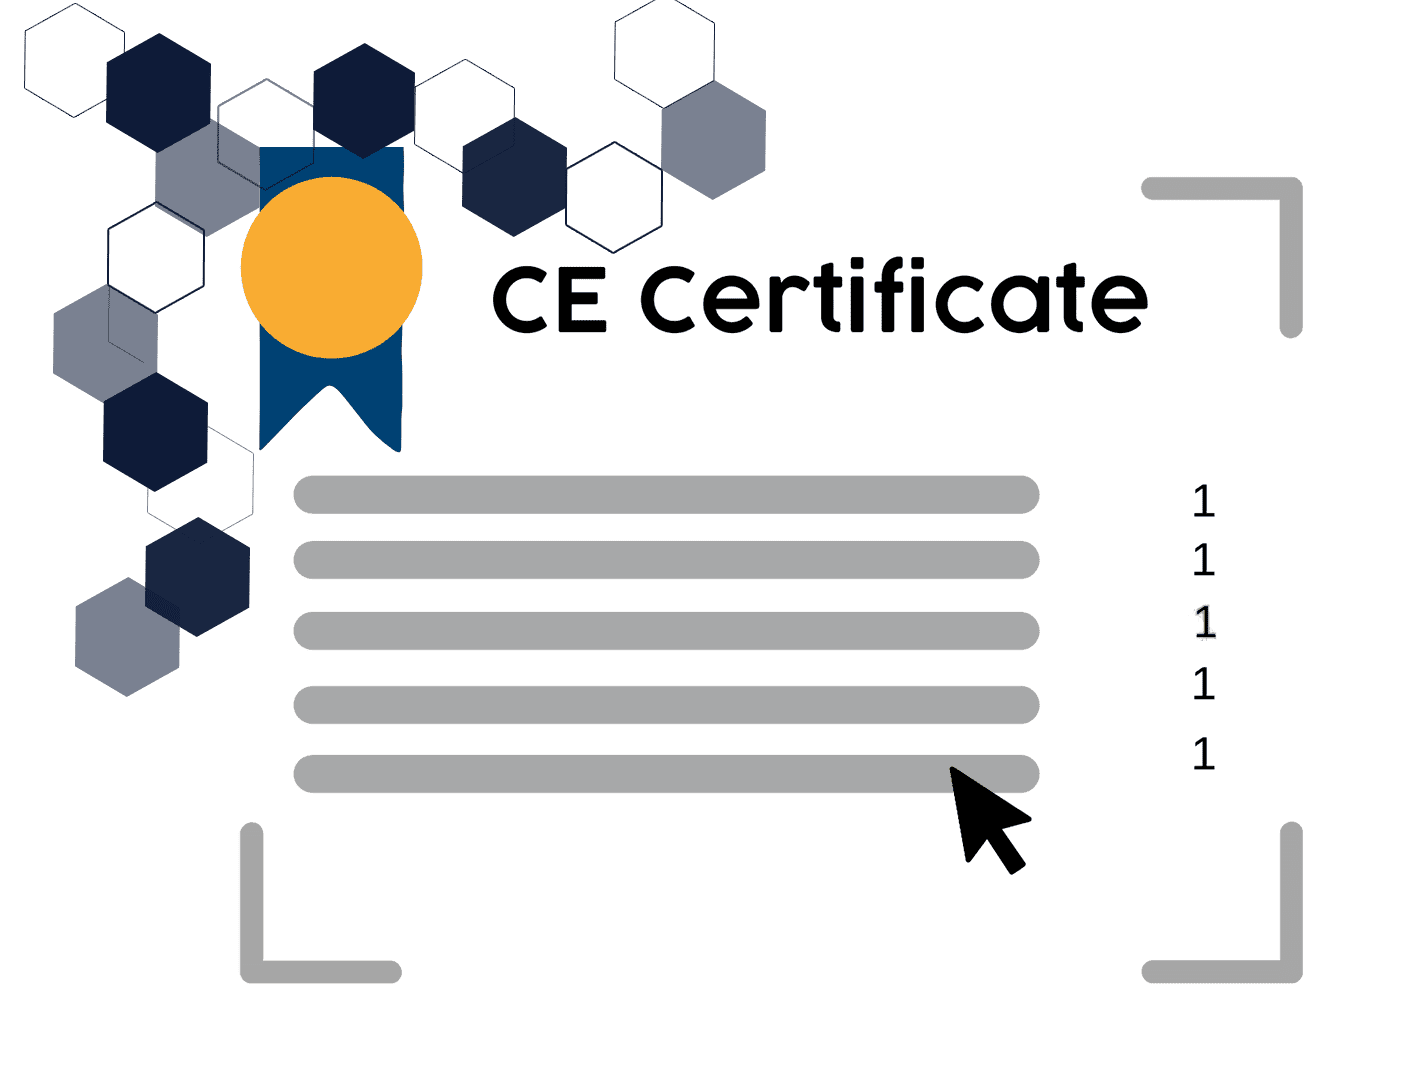 https://eventowl.com/wp-content/uploads/2020/10/CECertificate.png